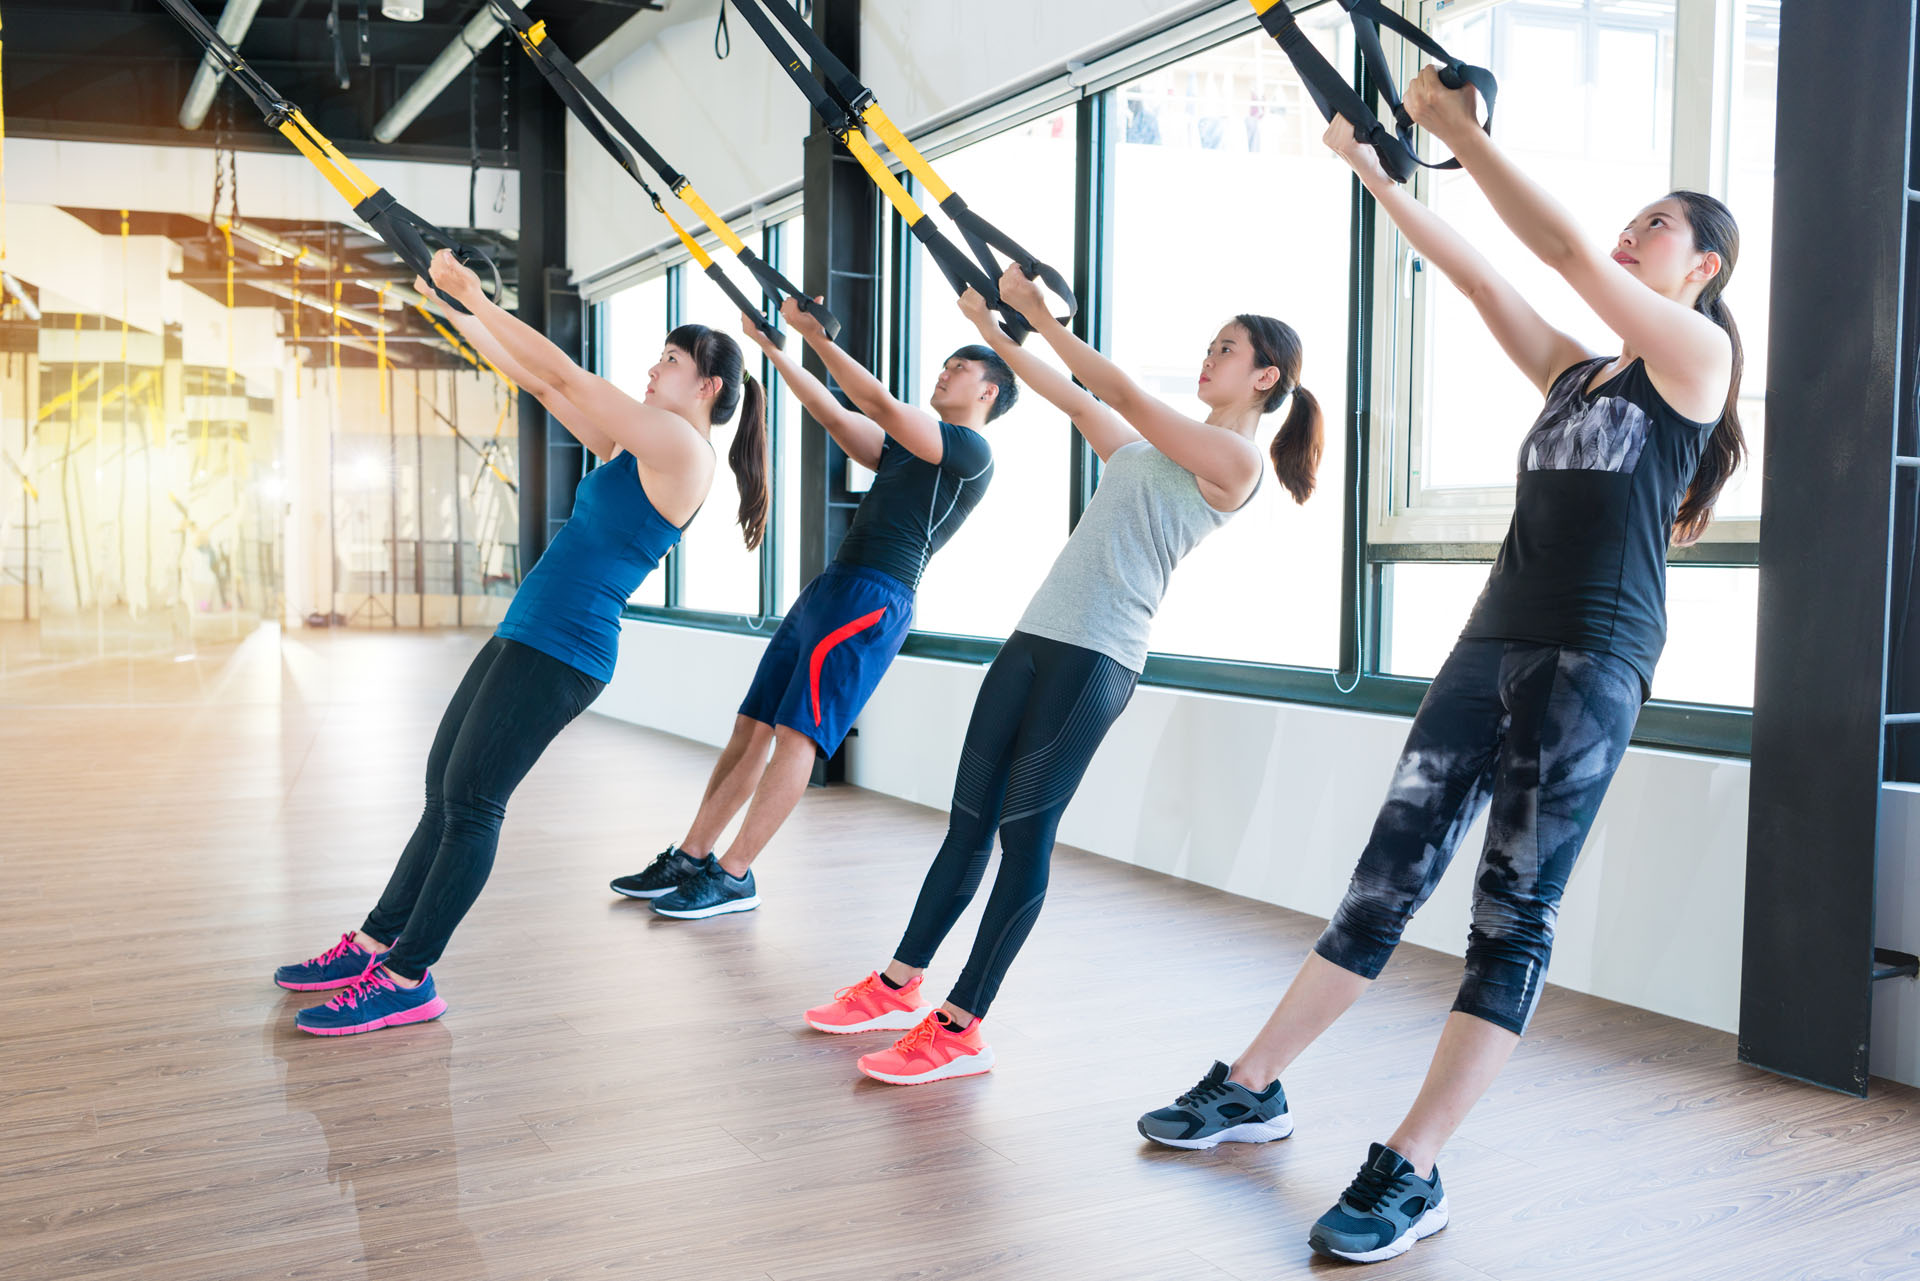 group of fitness TRX suspension straps training exercises Asian people doing the pull up, working with own weight in a sunny bright gym.